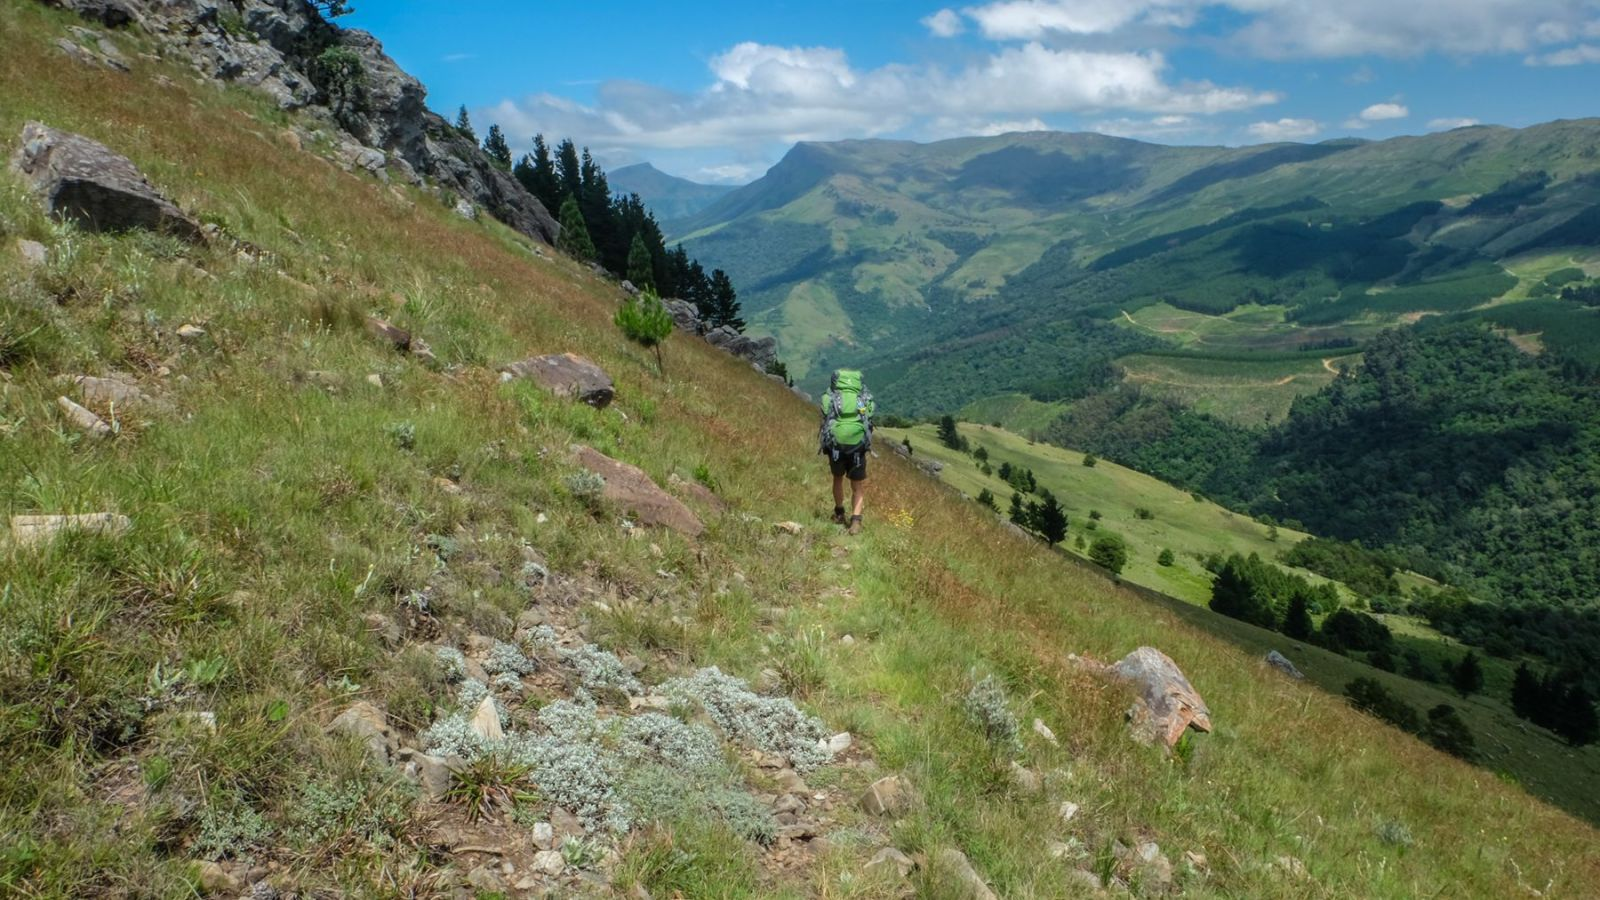 a photo of a hiker on the amathole trail with mountains in the background.